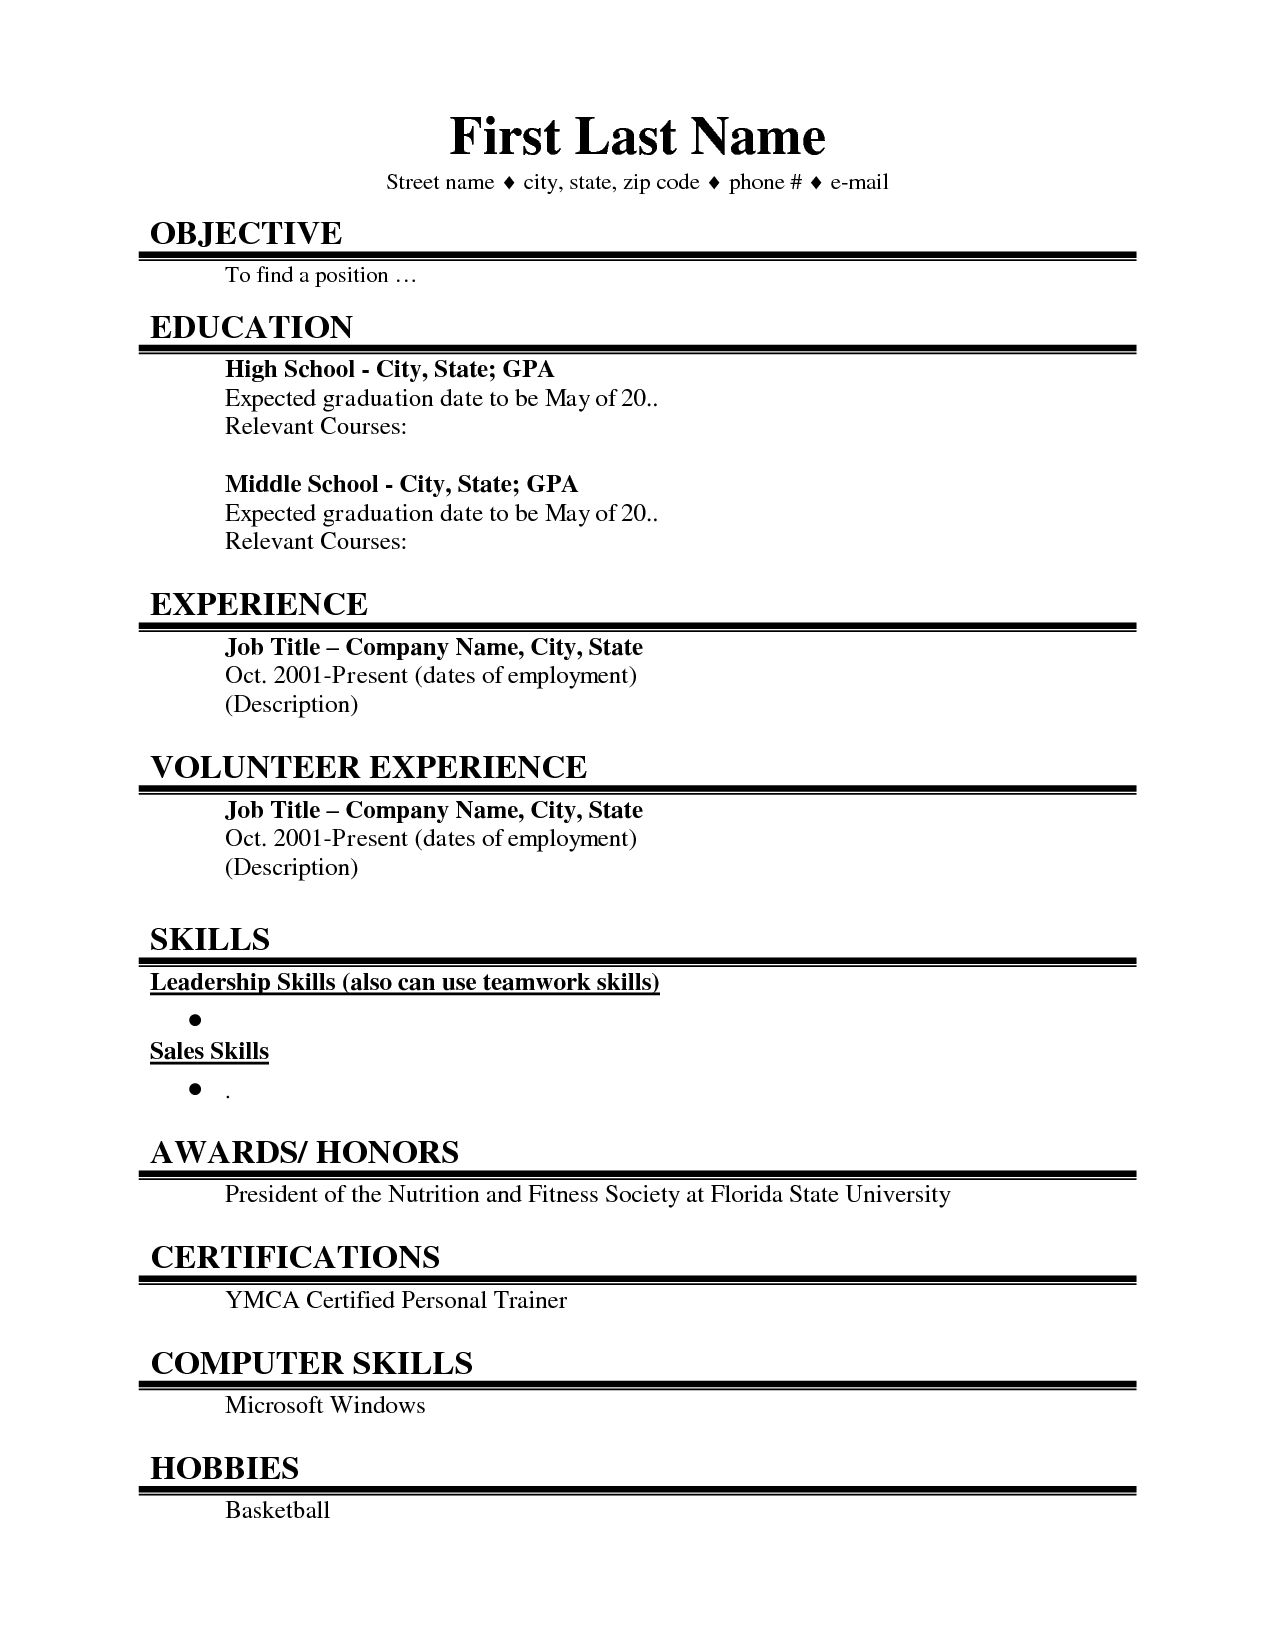 Resume Templates For Teens First Job Resume Google Search Resume Pinterest